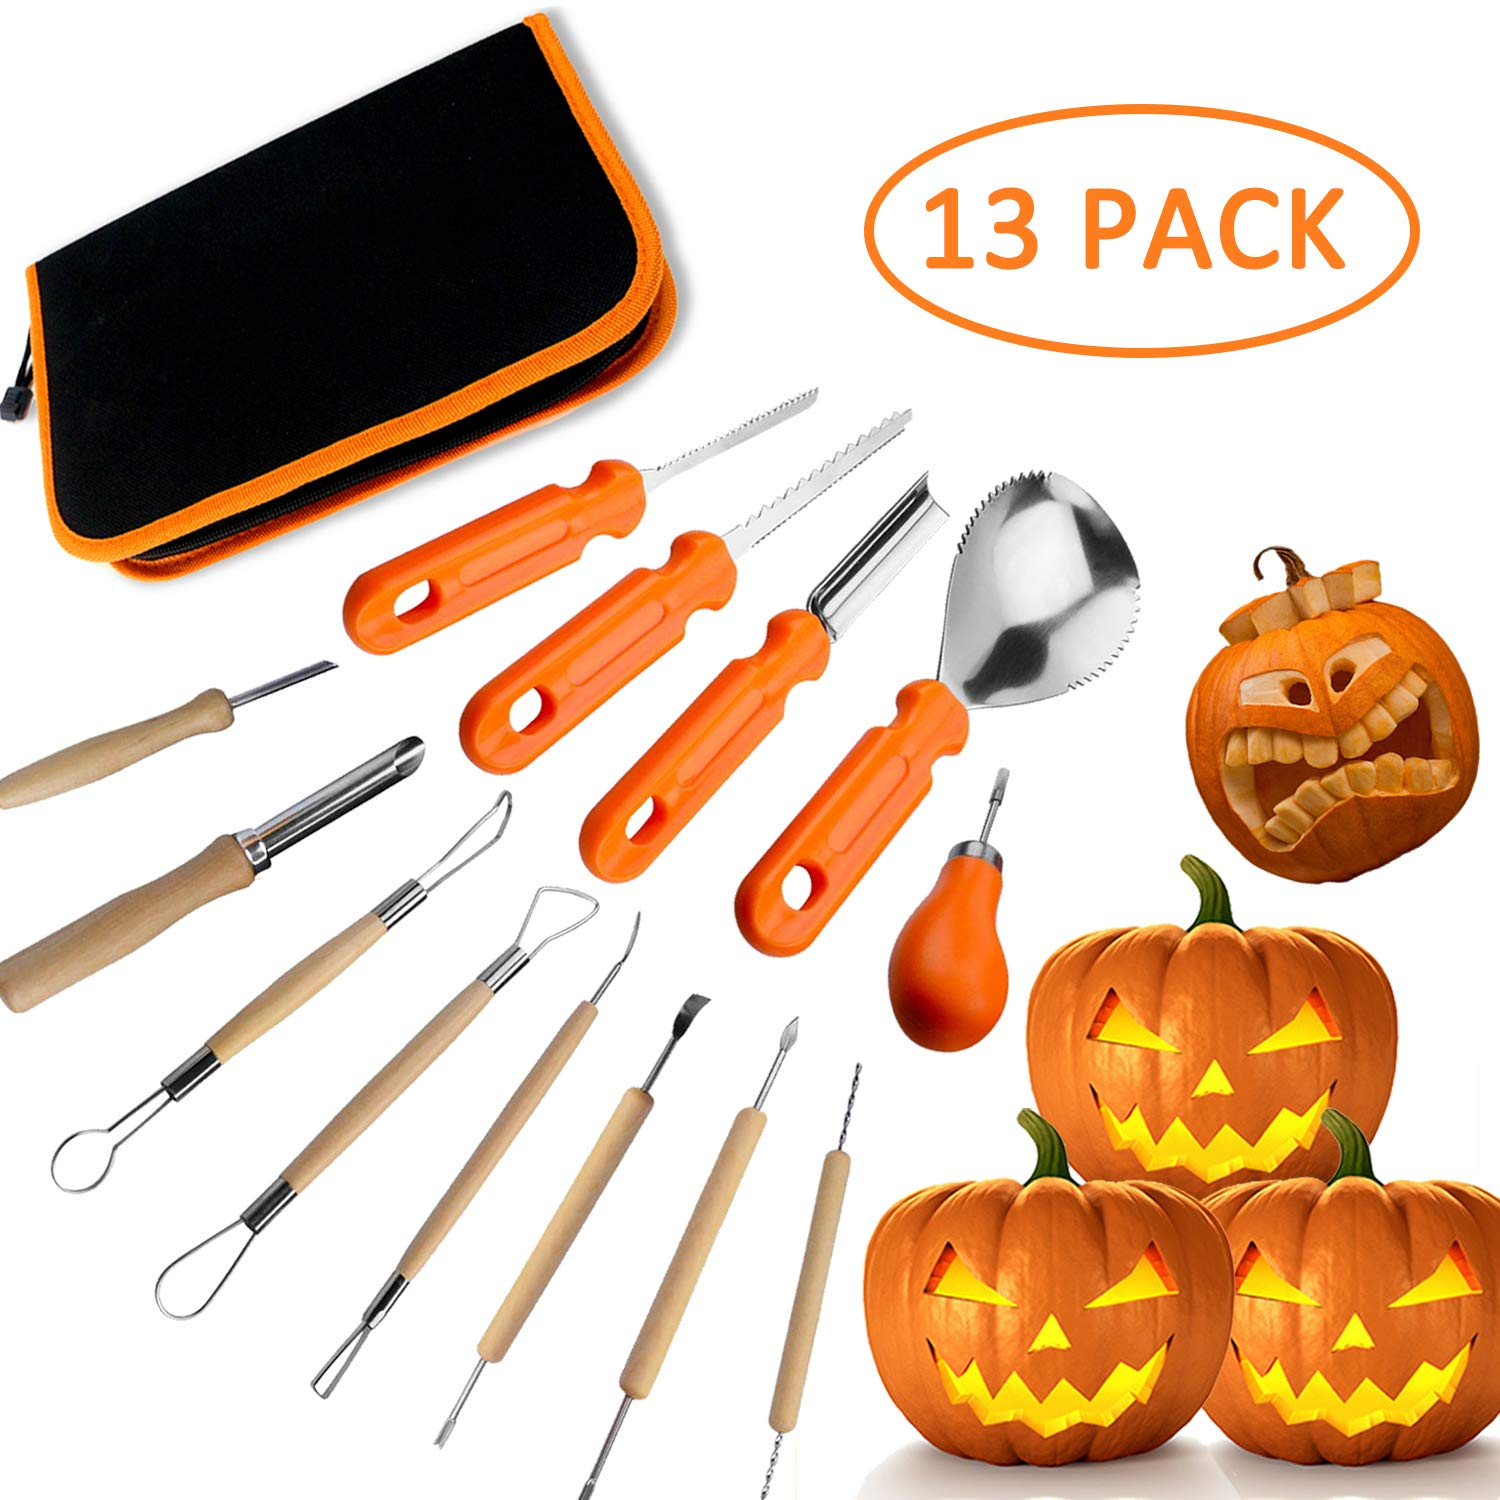 Halloween Pumpkin Carving Kit, Professional pumpkin cutting supplies Kit, Easily Sculpting Jack-O-Lanterns,13 Pieces by color mogu